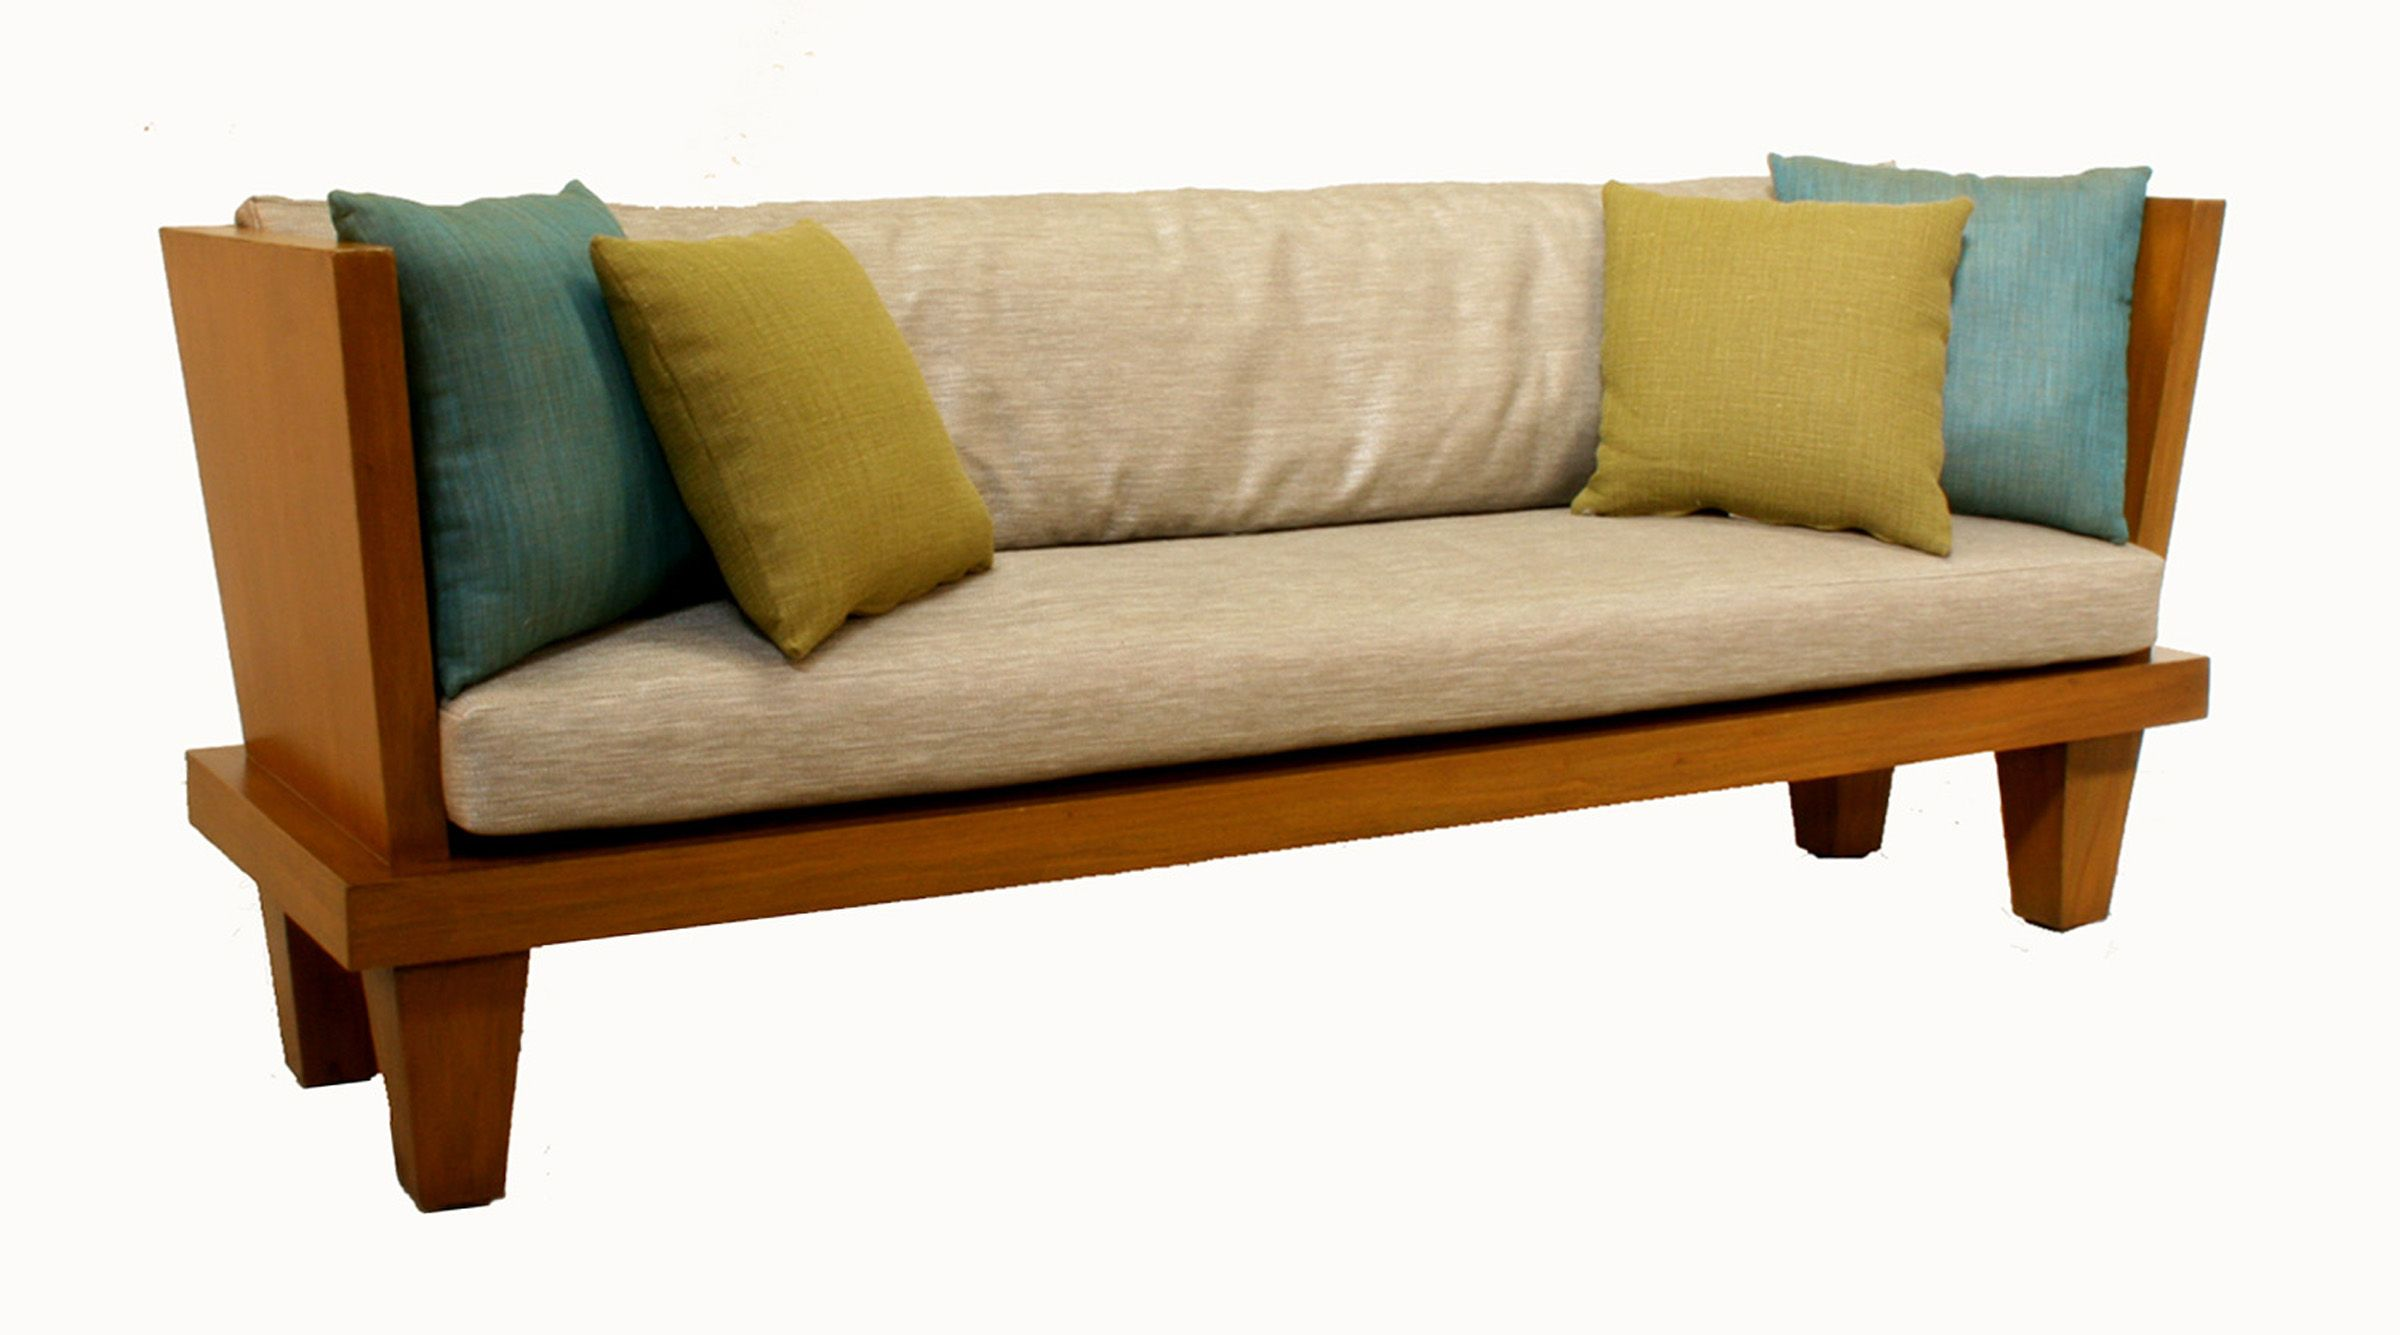 Amusing Settee Bench For Home Furniture Ideas: Wooden Settee Bench With  Beige Cushion Seat And Back For Home Furniture Ideas